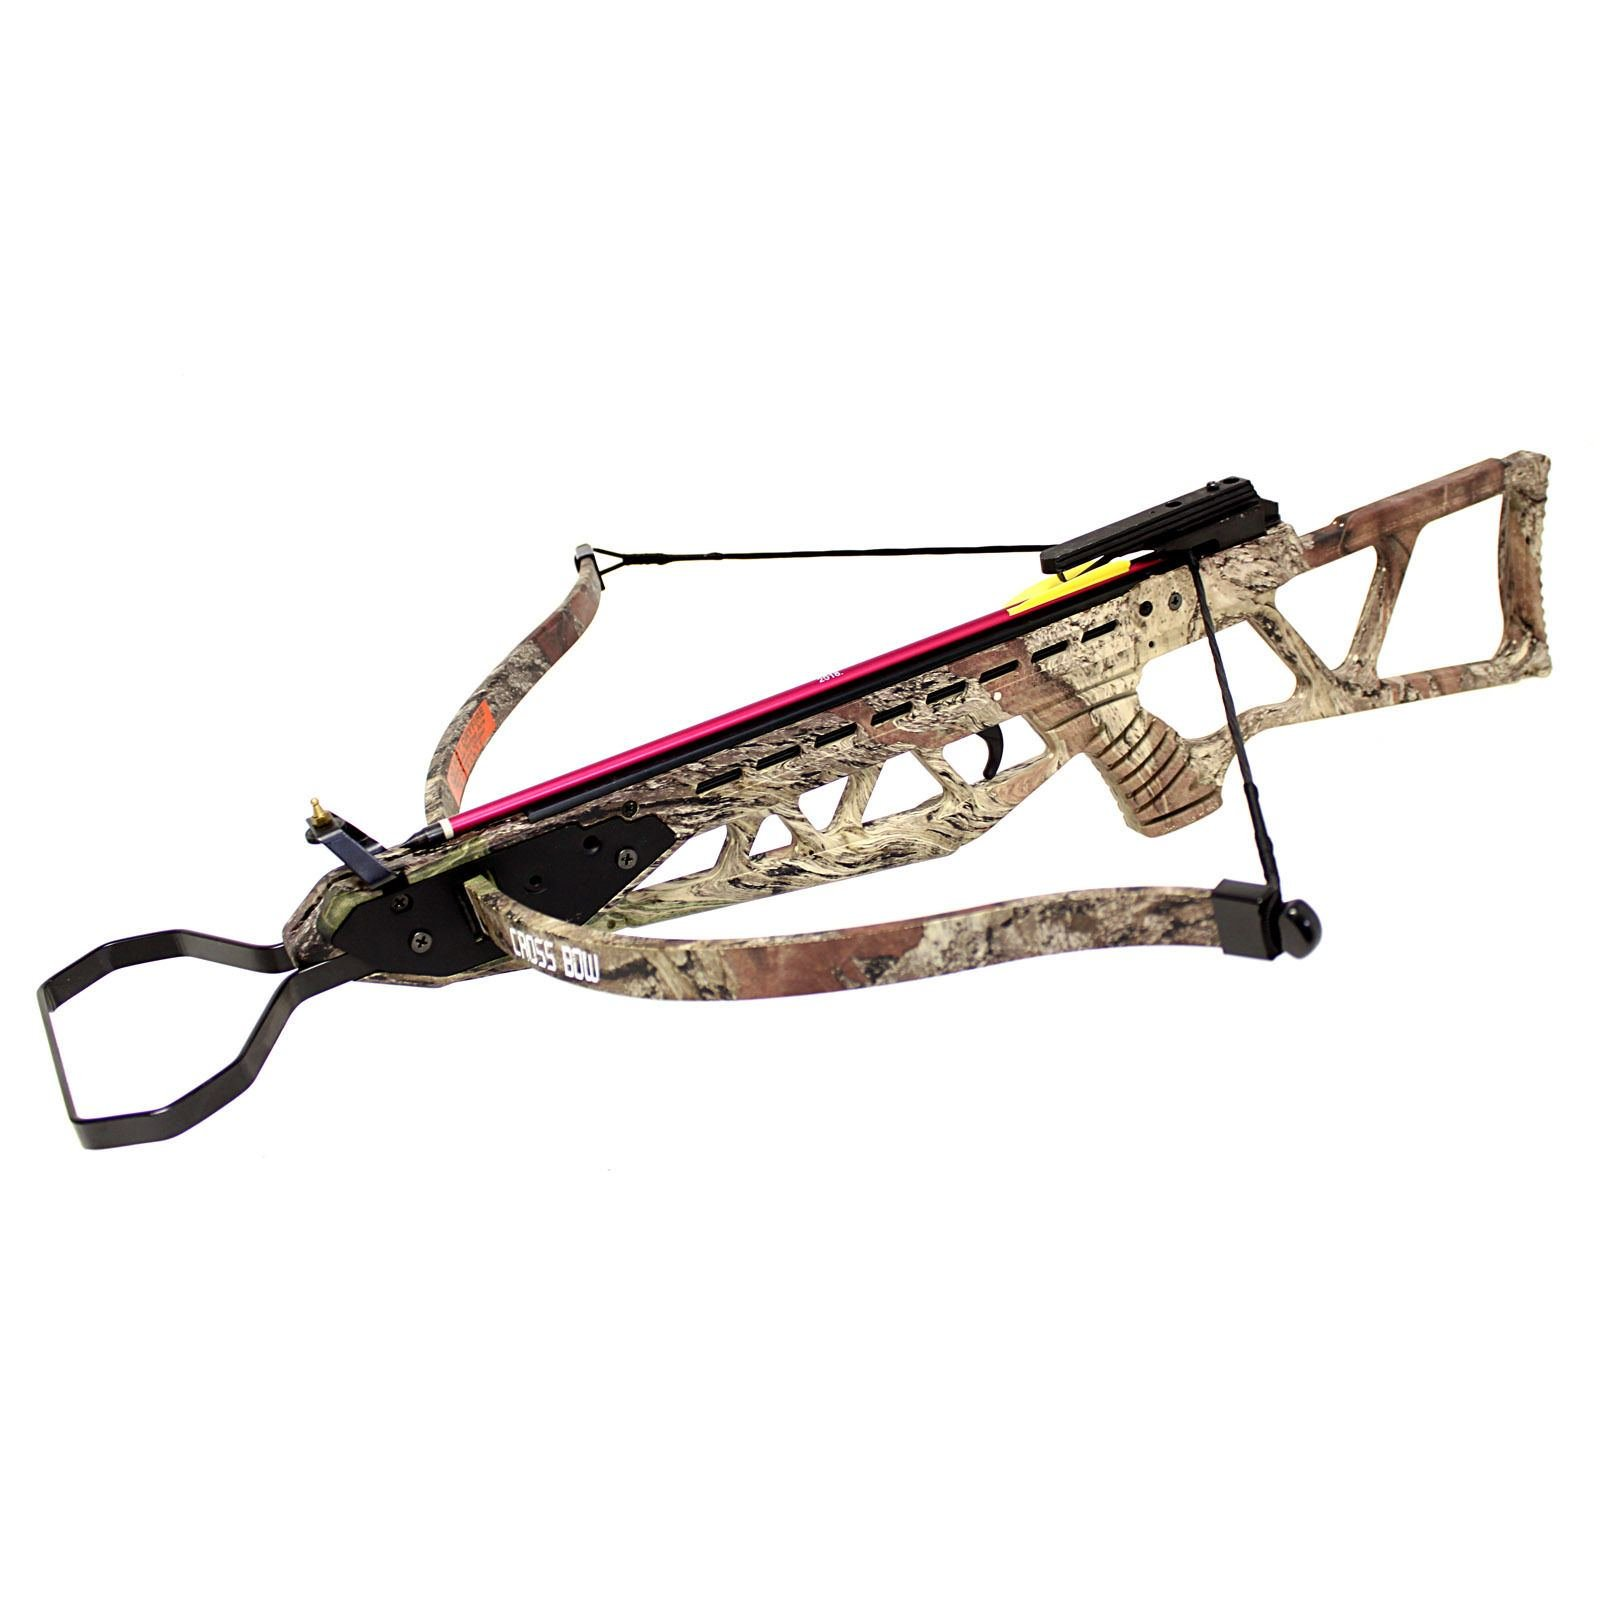 Hunting Crossbows 120 lbs Camo Brown Hunting Crossbow Archery bow with 2 Arrows Bolts Crossbow Bolts